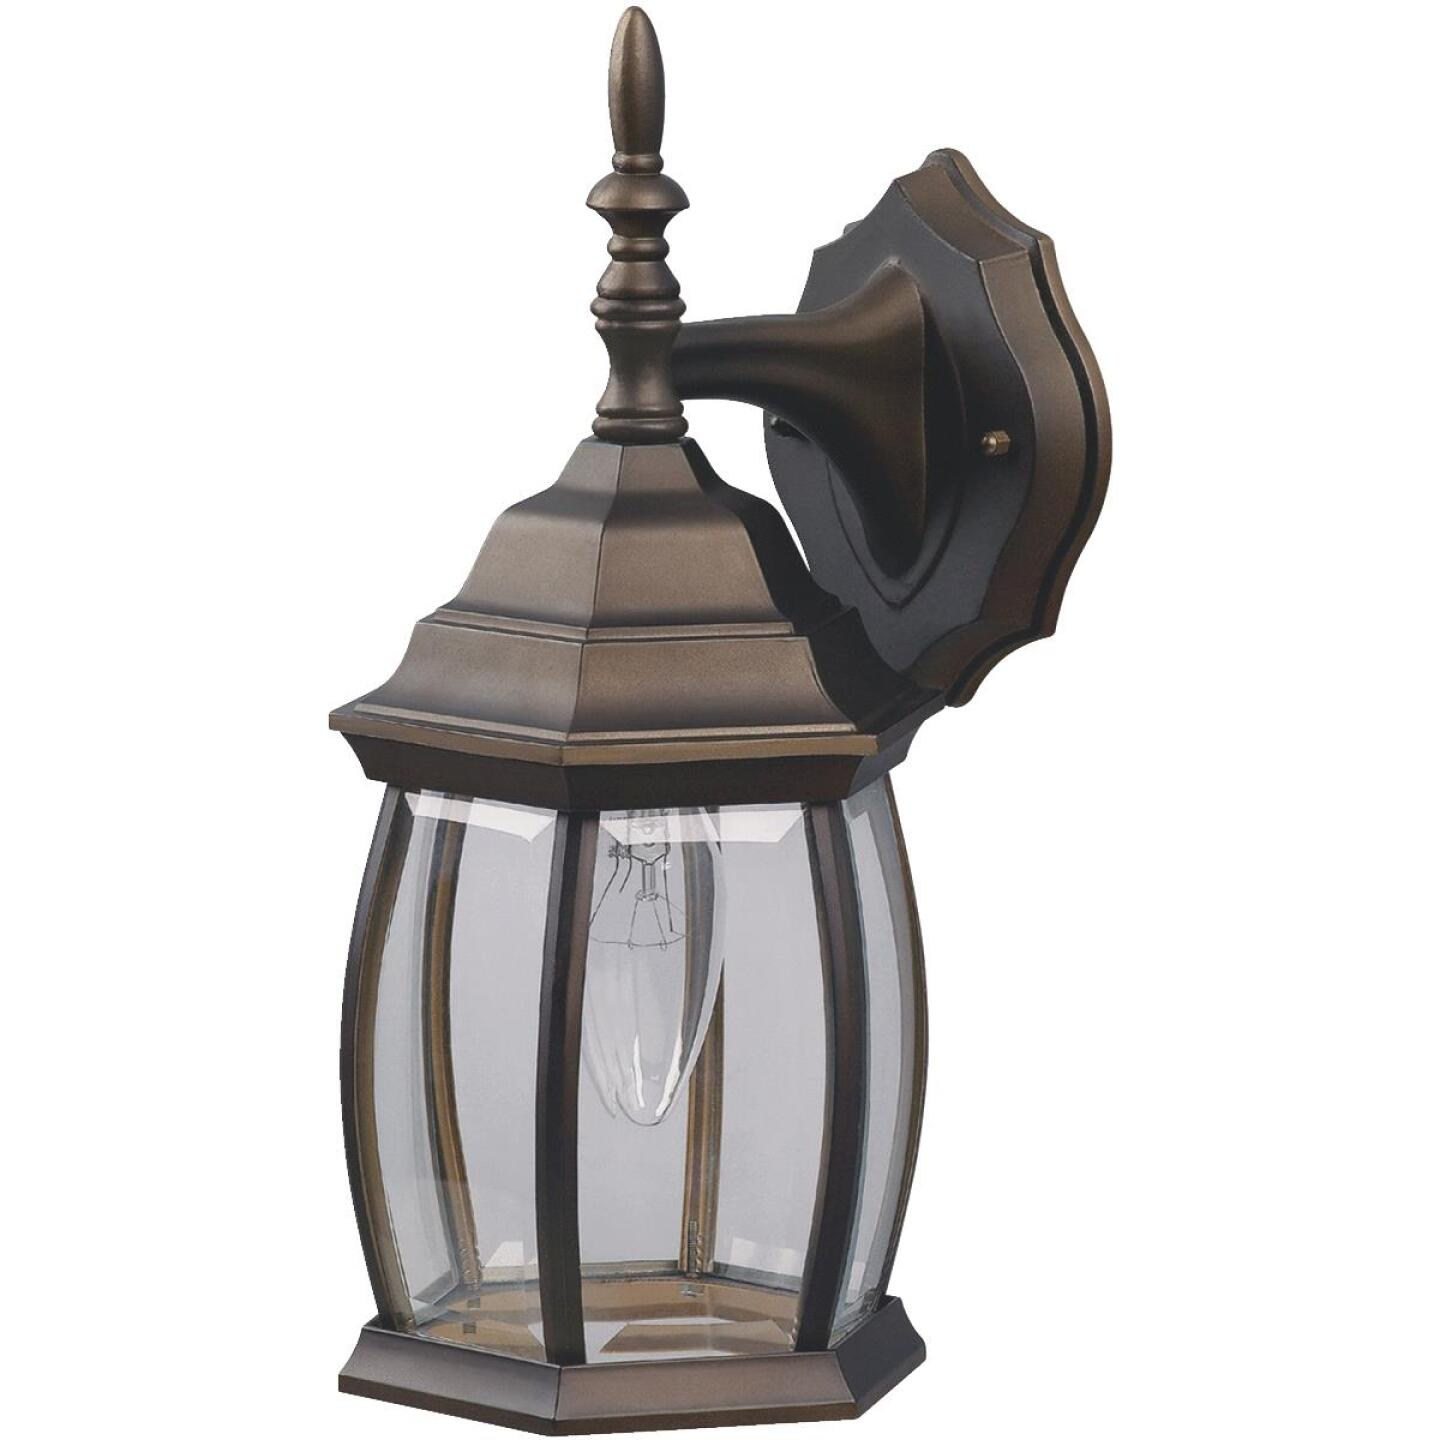 Home Impressions Oil Rubbed Bronze Incandescent Type A or B Outdoor Wall Light Fixture (2-Pack) Image 3